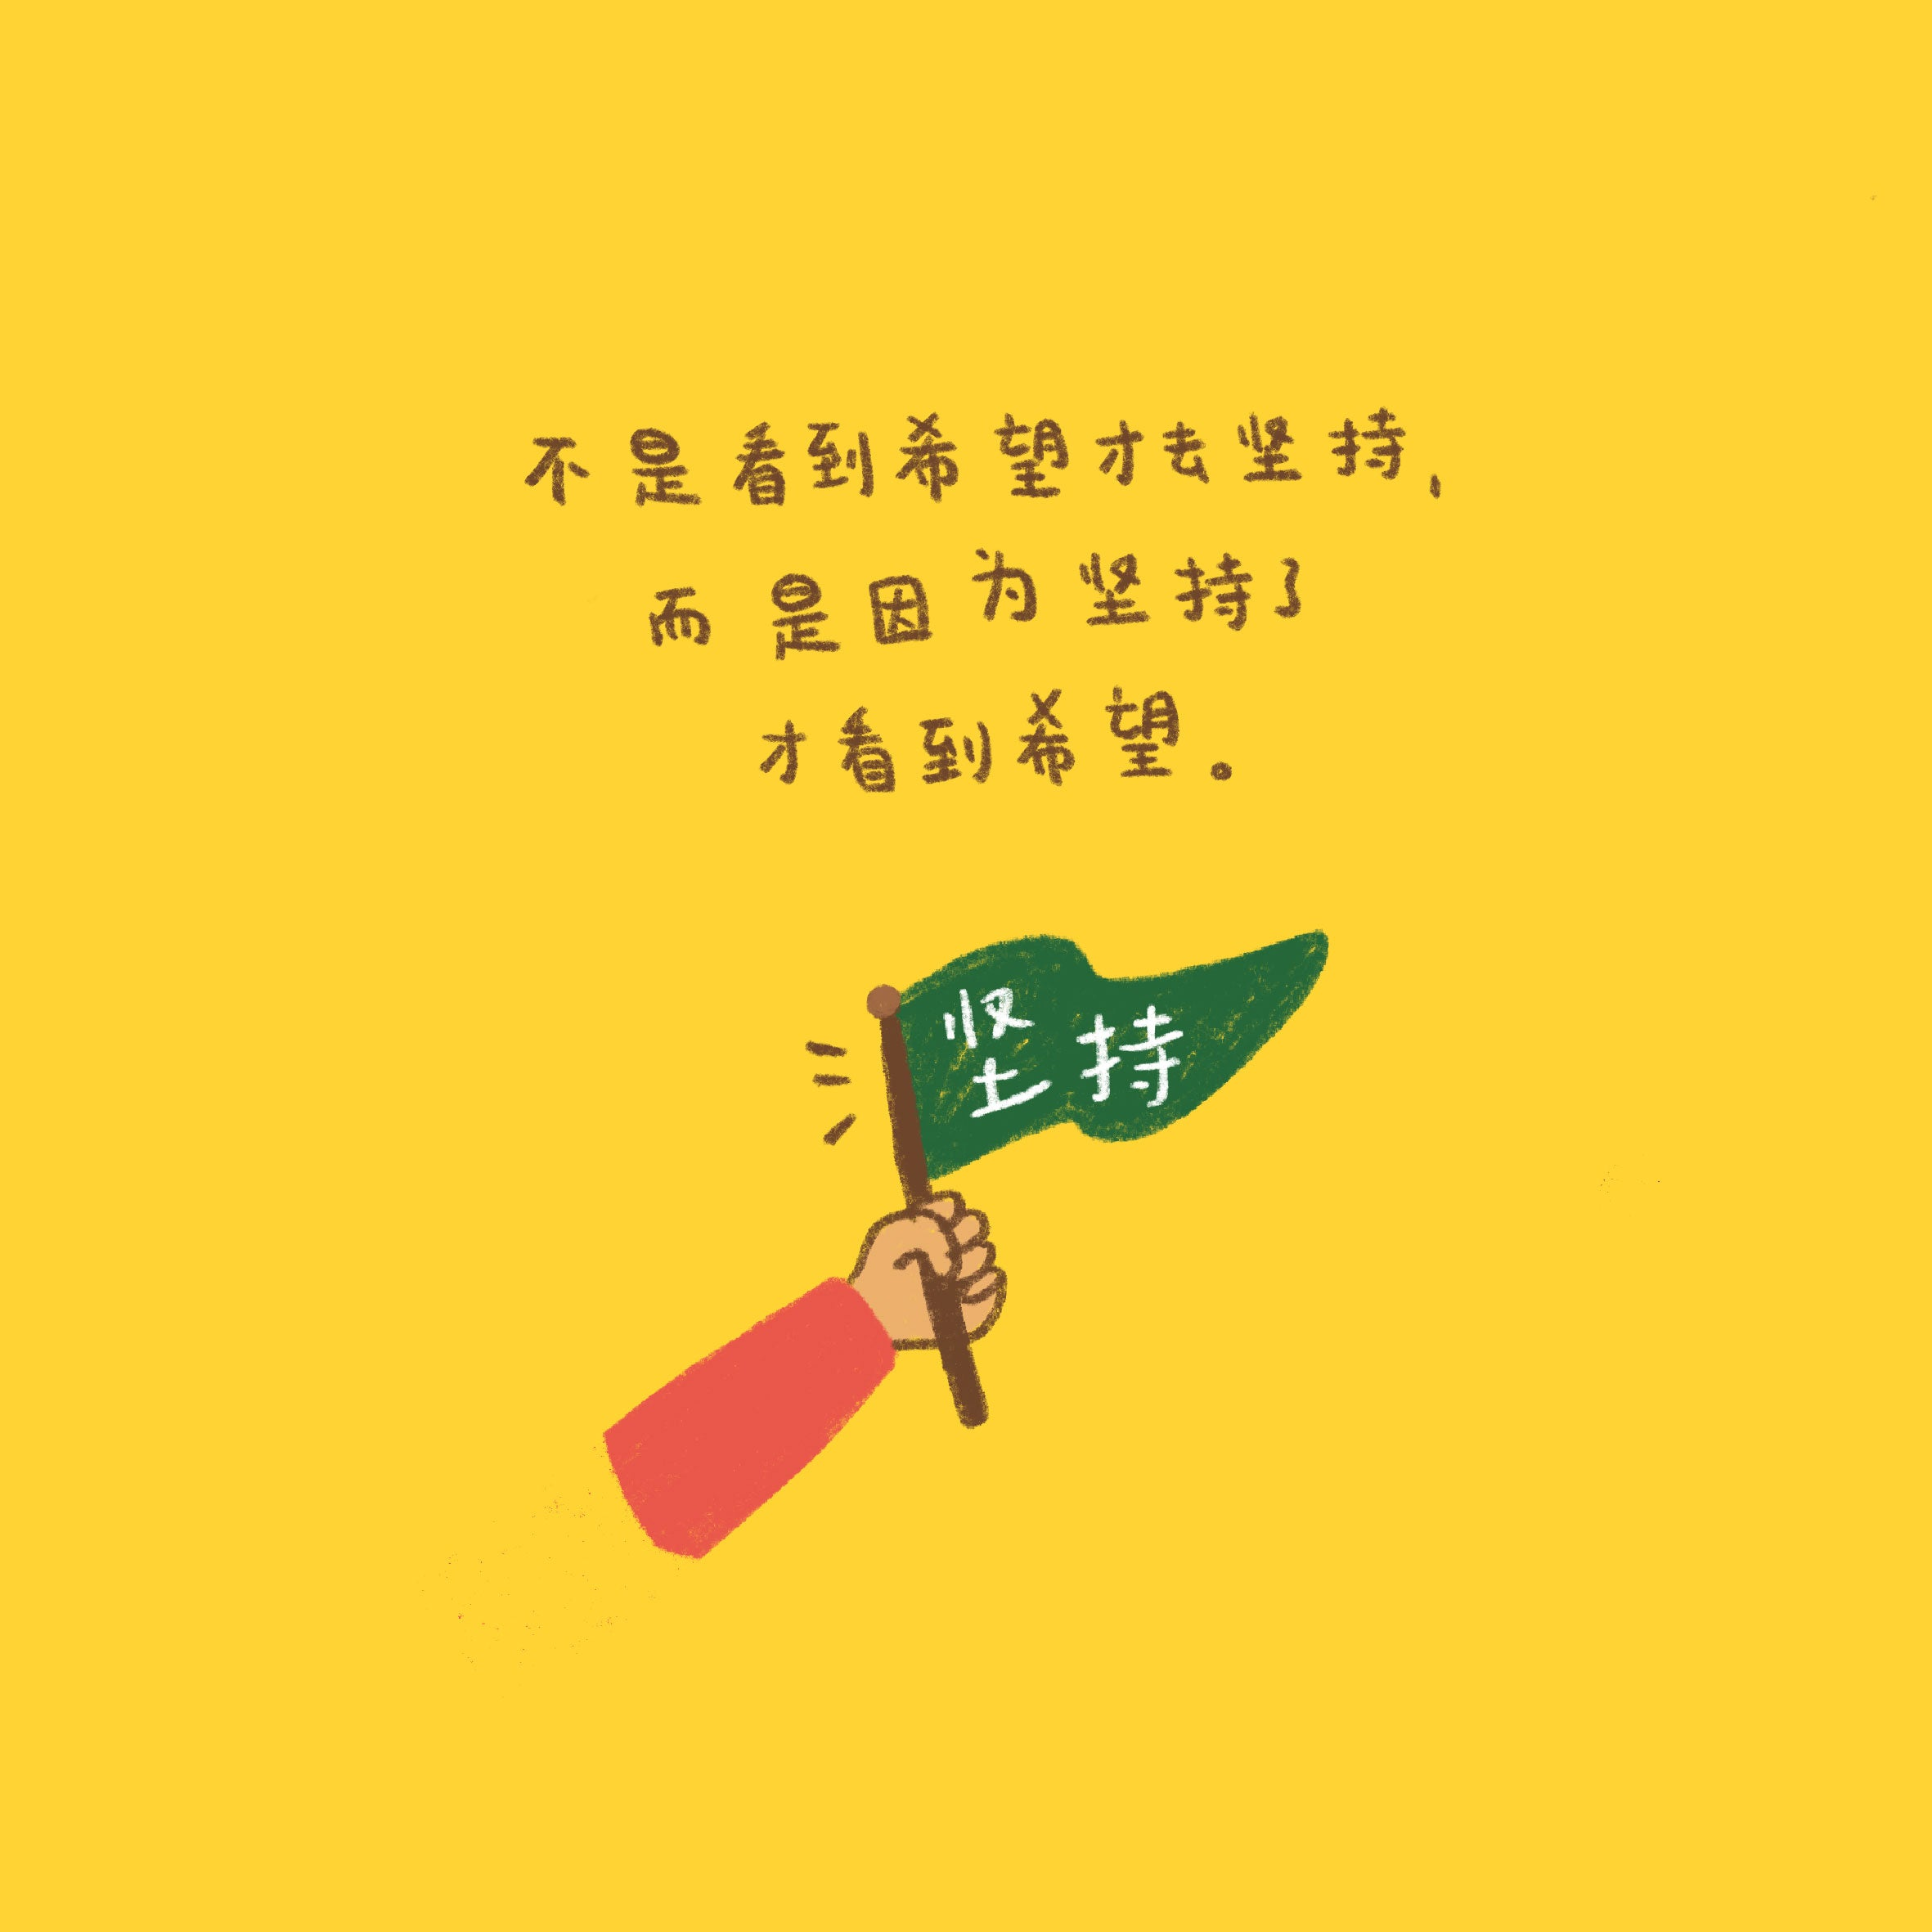 digital illustration of a hand holding a flag with the chinese characters for persevere on it and a quote to motivate people to keep going during tough times